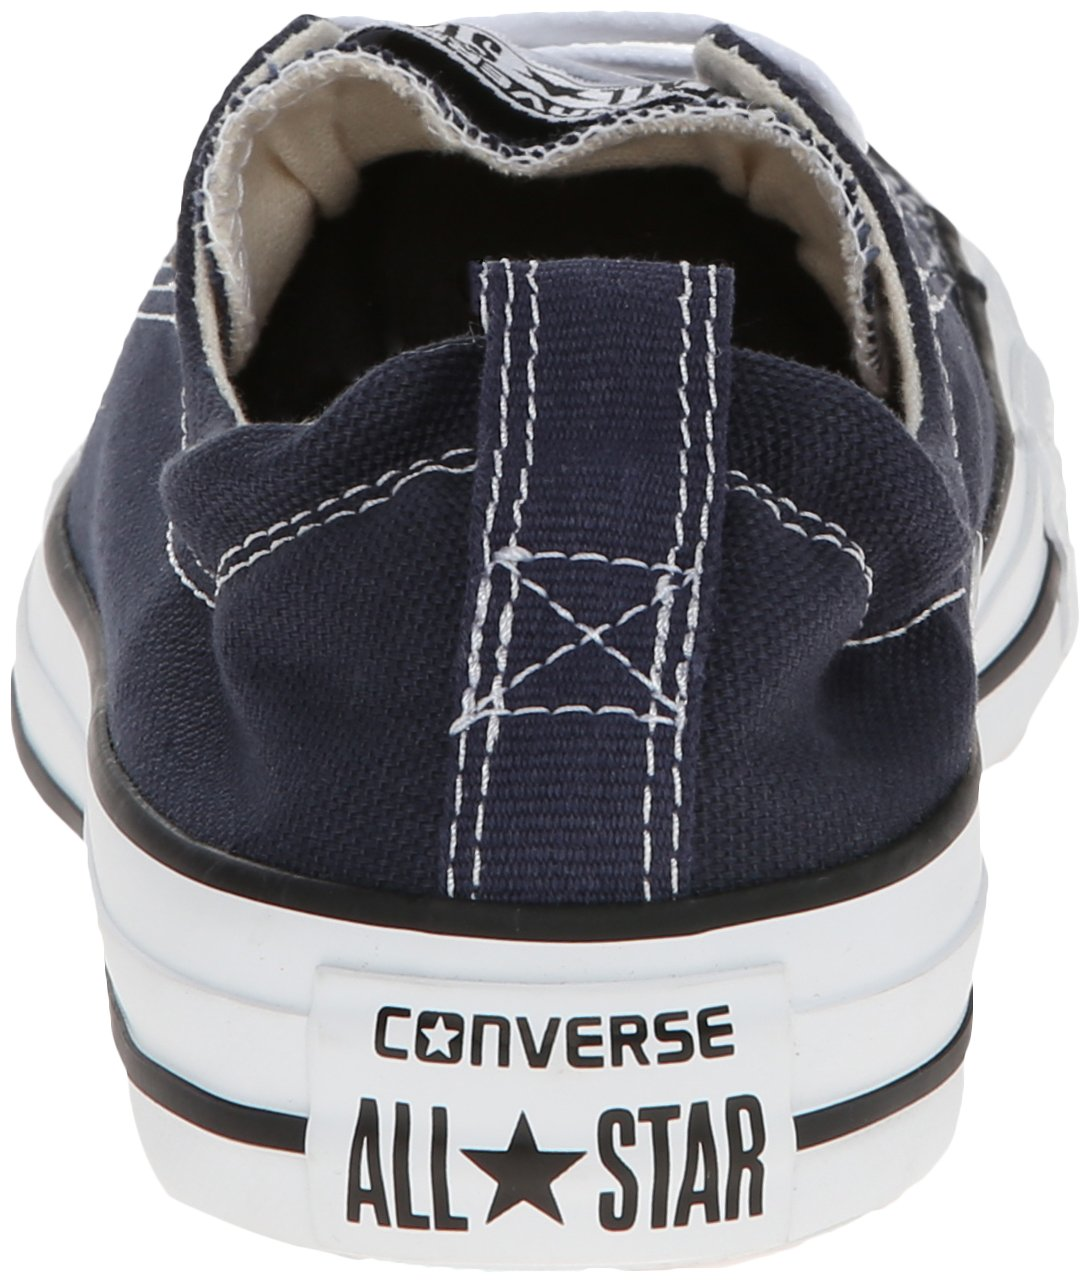 Converse Women's Shoreline Slip on Sneaker B01LYYMLQW Medium / 7 B(M) US|Athletic Navy